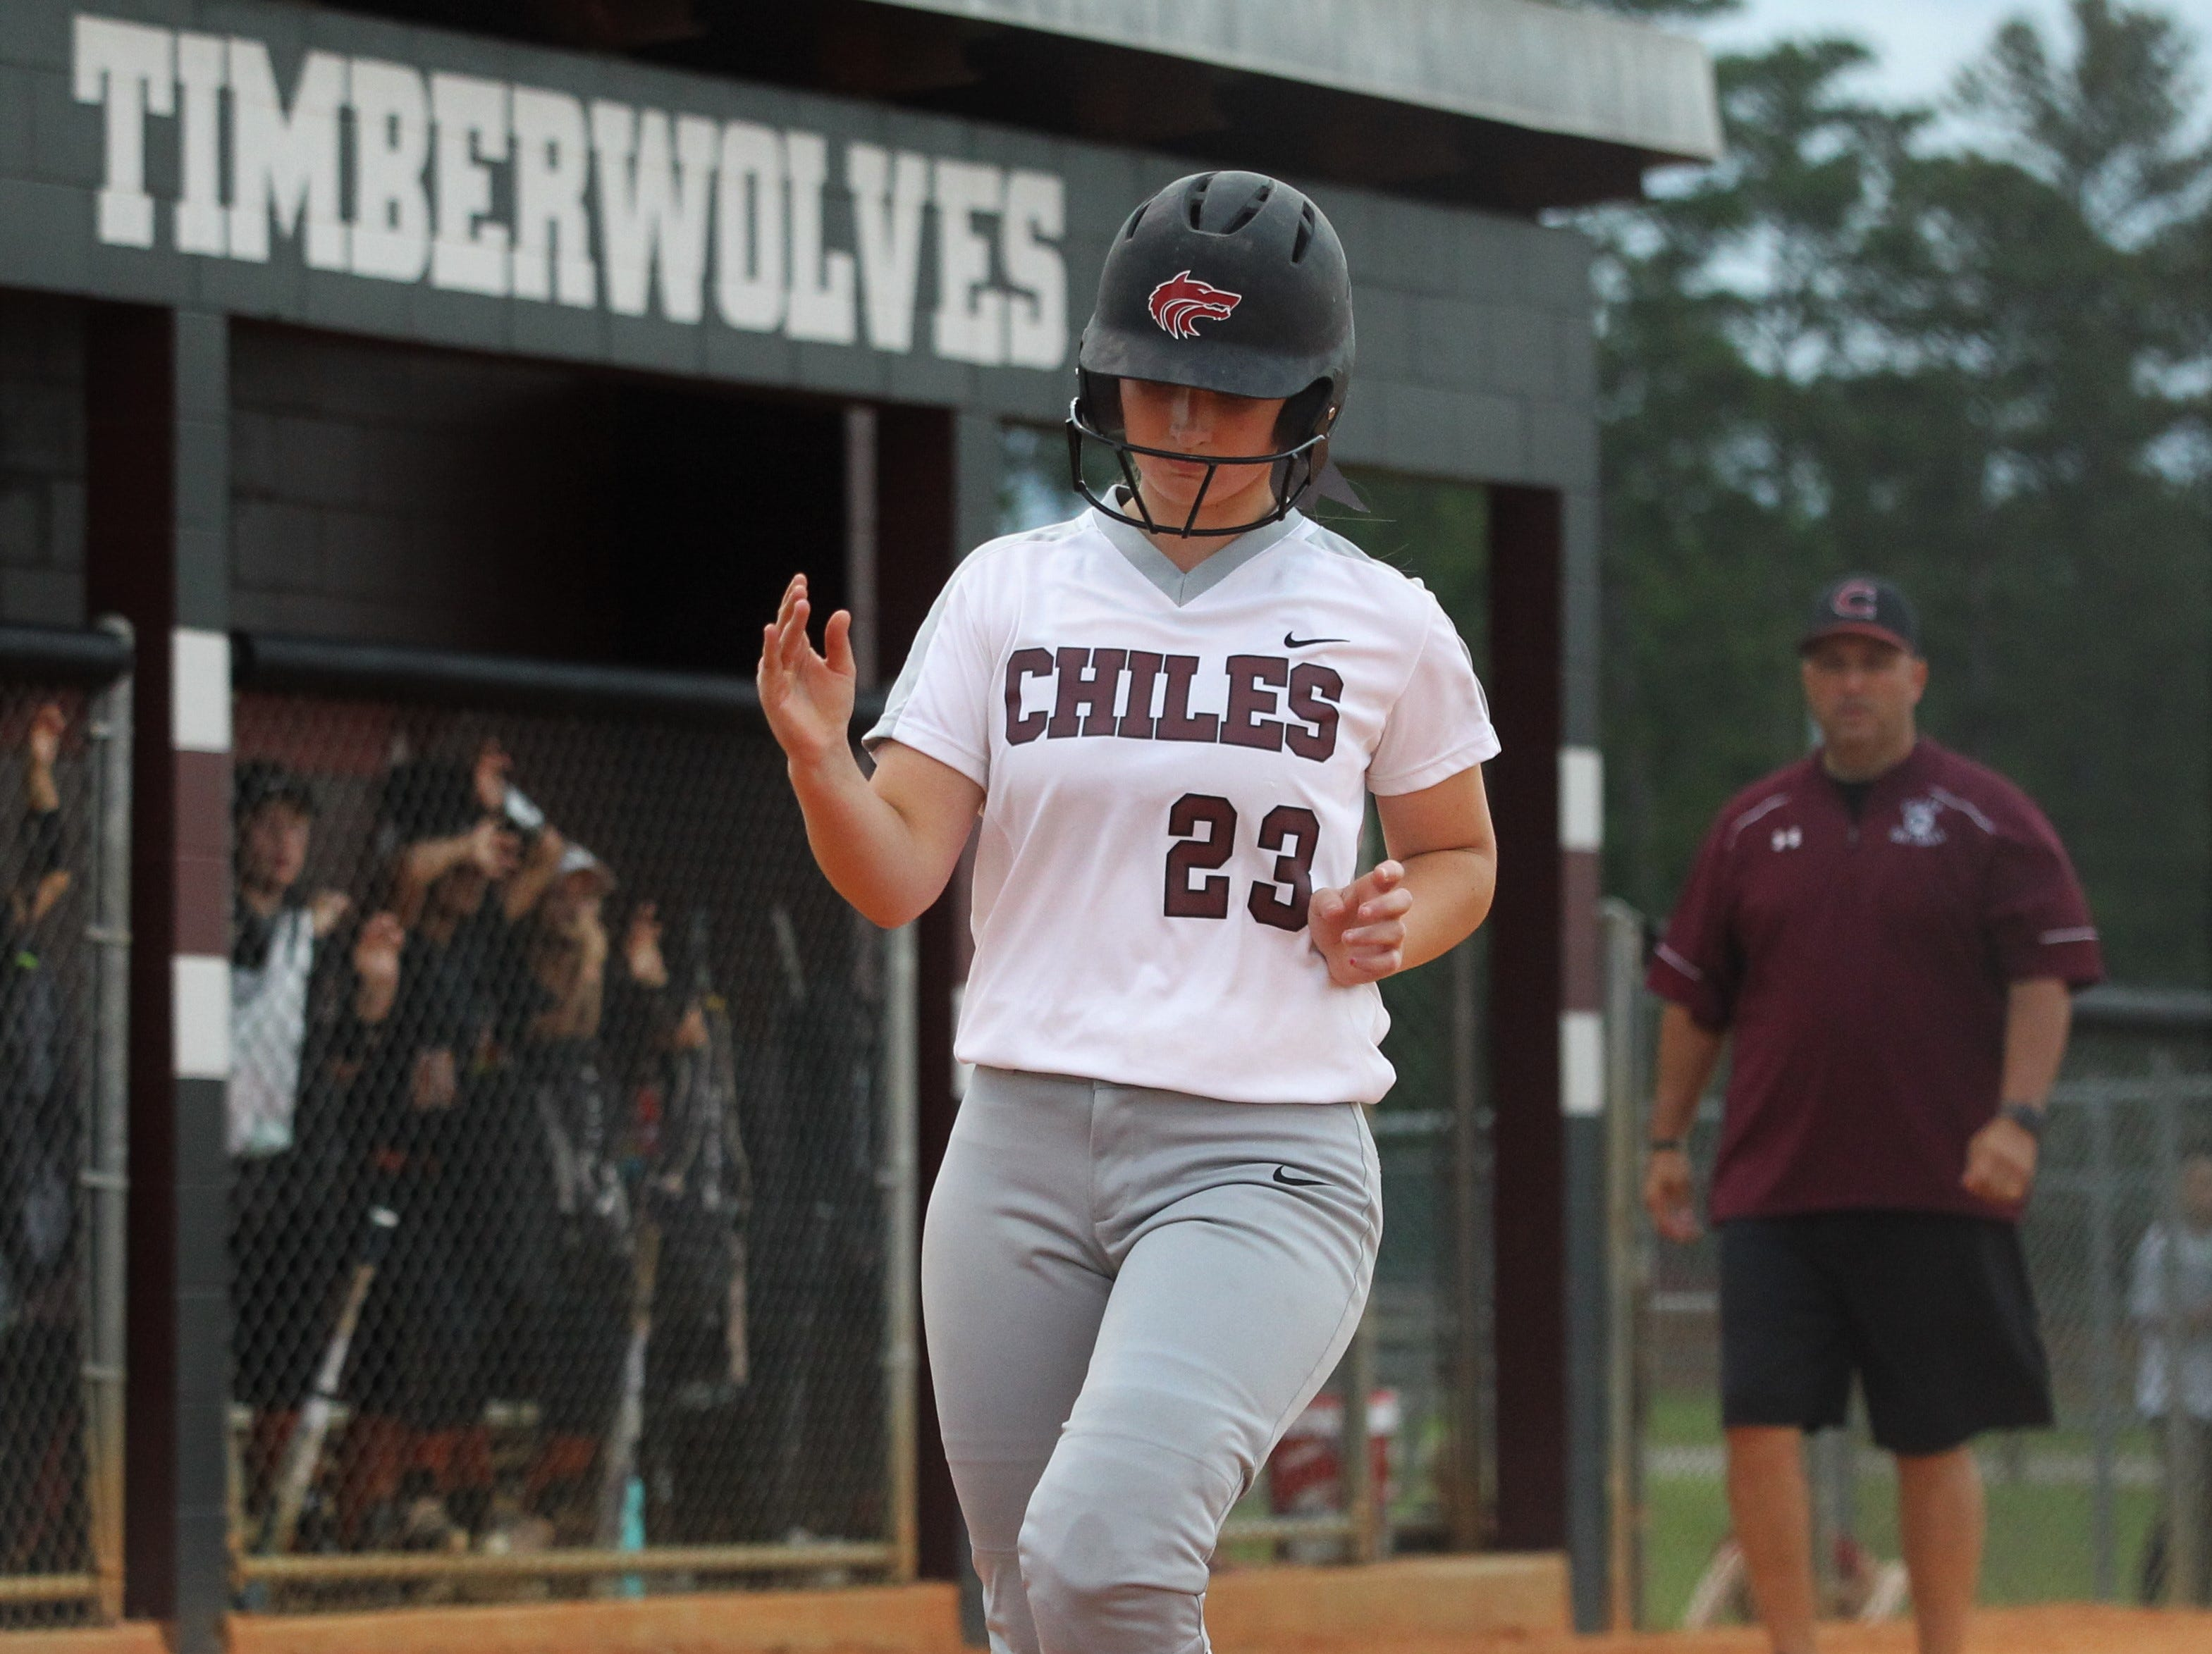 Chiles junior Sierra Jevyak scores a first-inning run as the Timberwolves beat Atlantic Coast 6-4 during a Region 1-8A quarterfinal softball game on Wednesday, May 8, 2019.